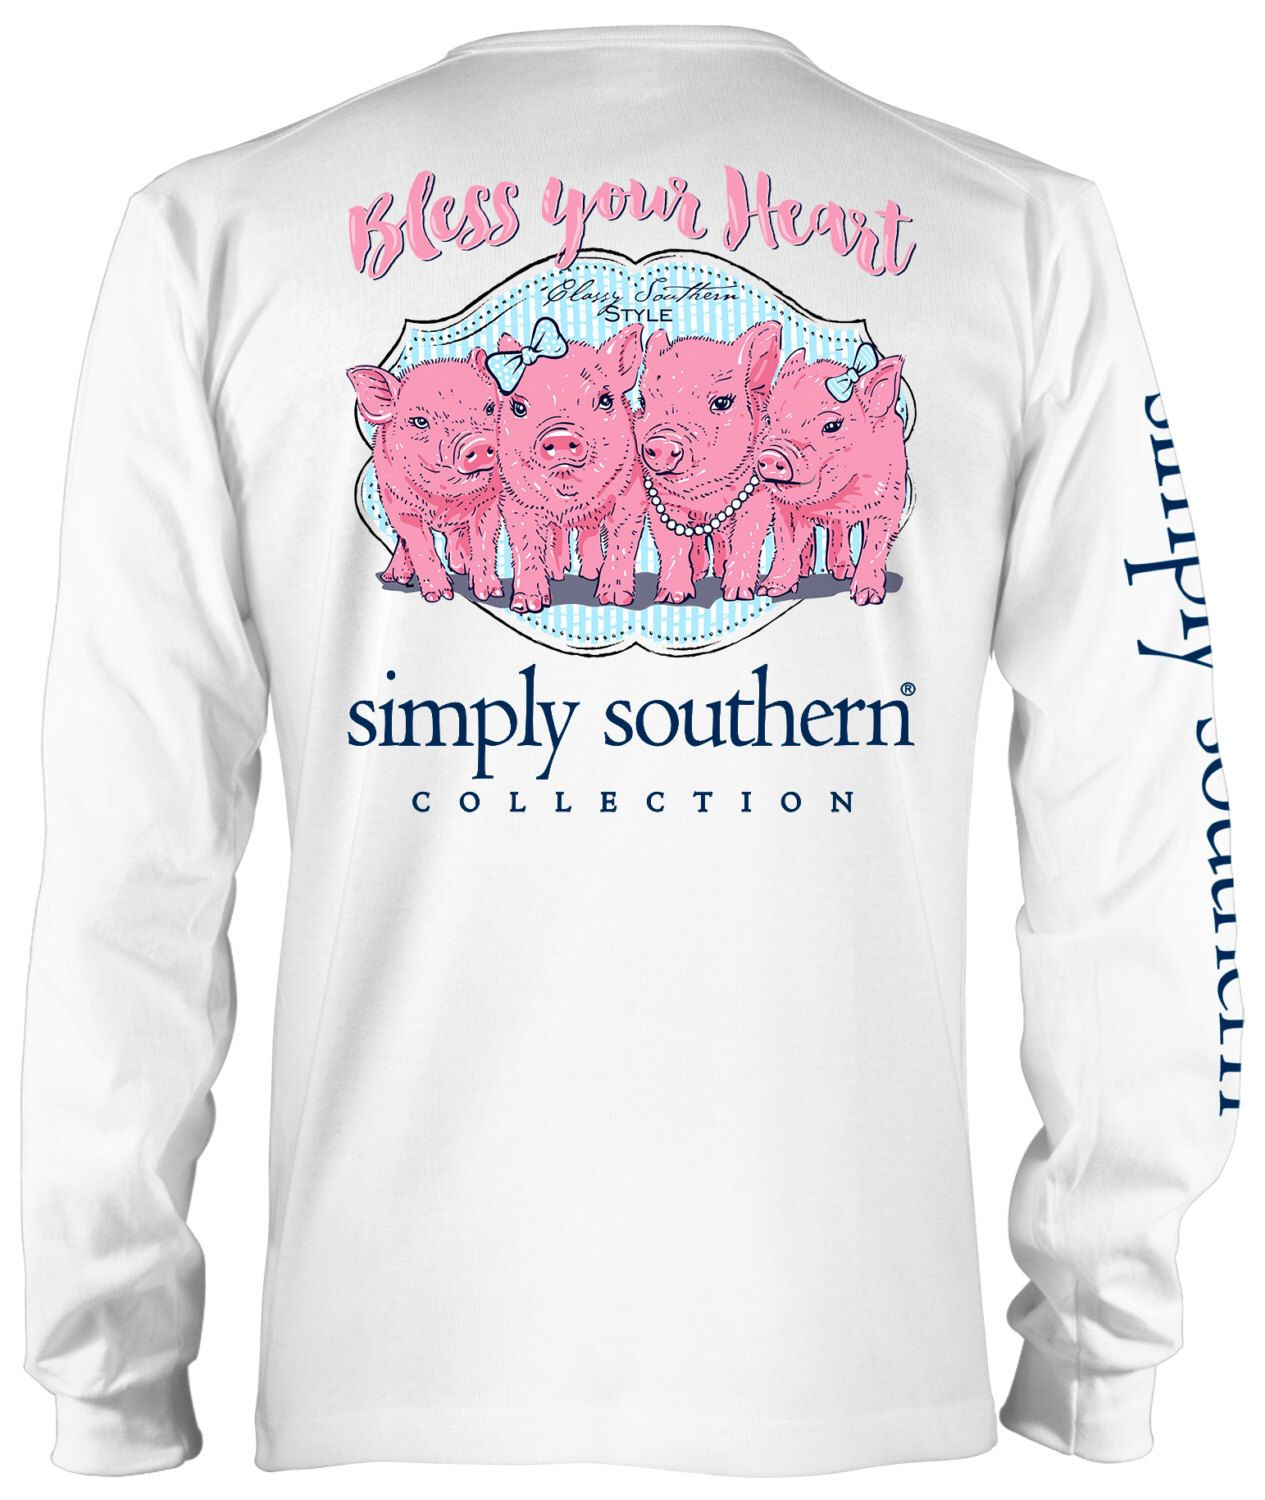 df7f3fceb BLESS YOUR HEART Adult Sizes $14.00 Simple Southern Shirts, Preppy  Southern, Southern Shirt Company